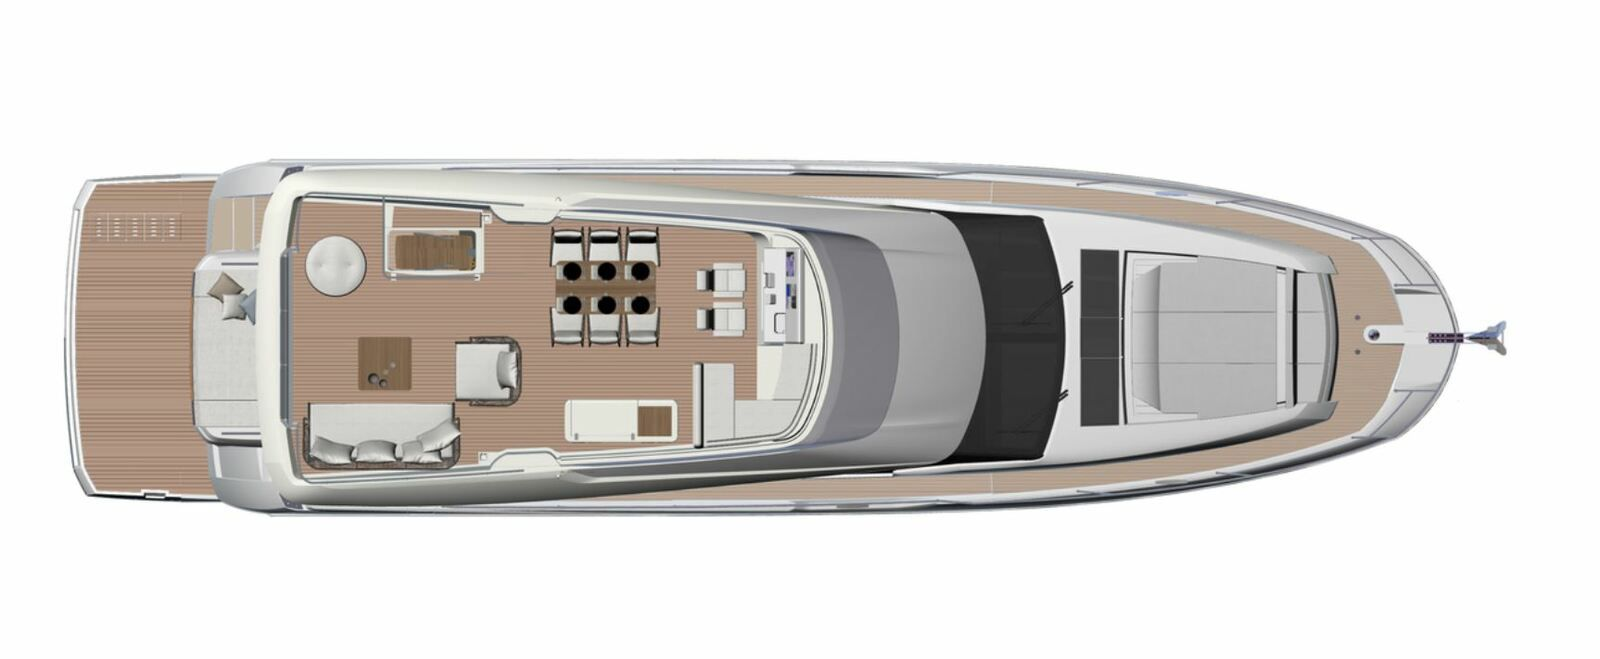 Yachting - Test of the Prestige 690